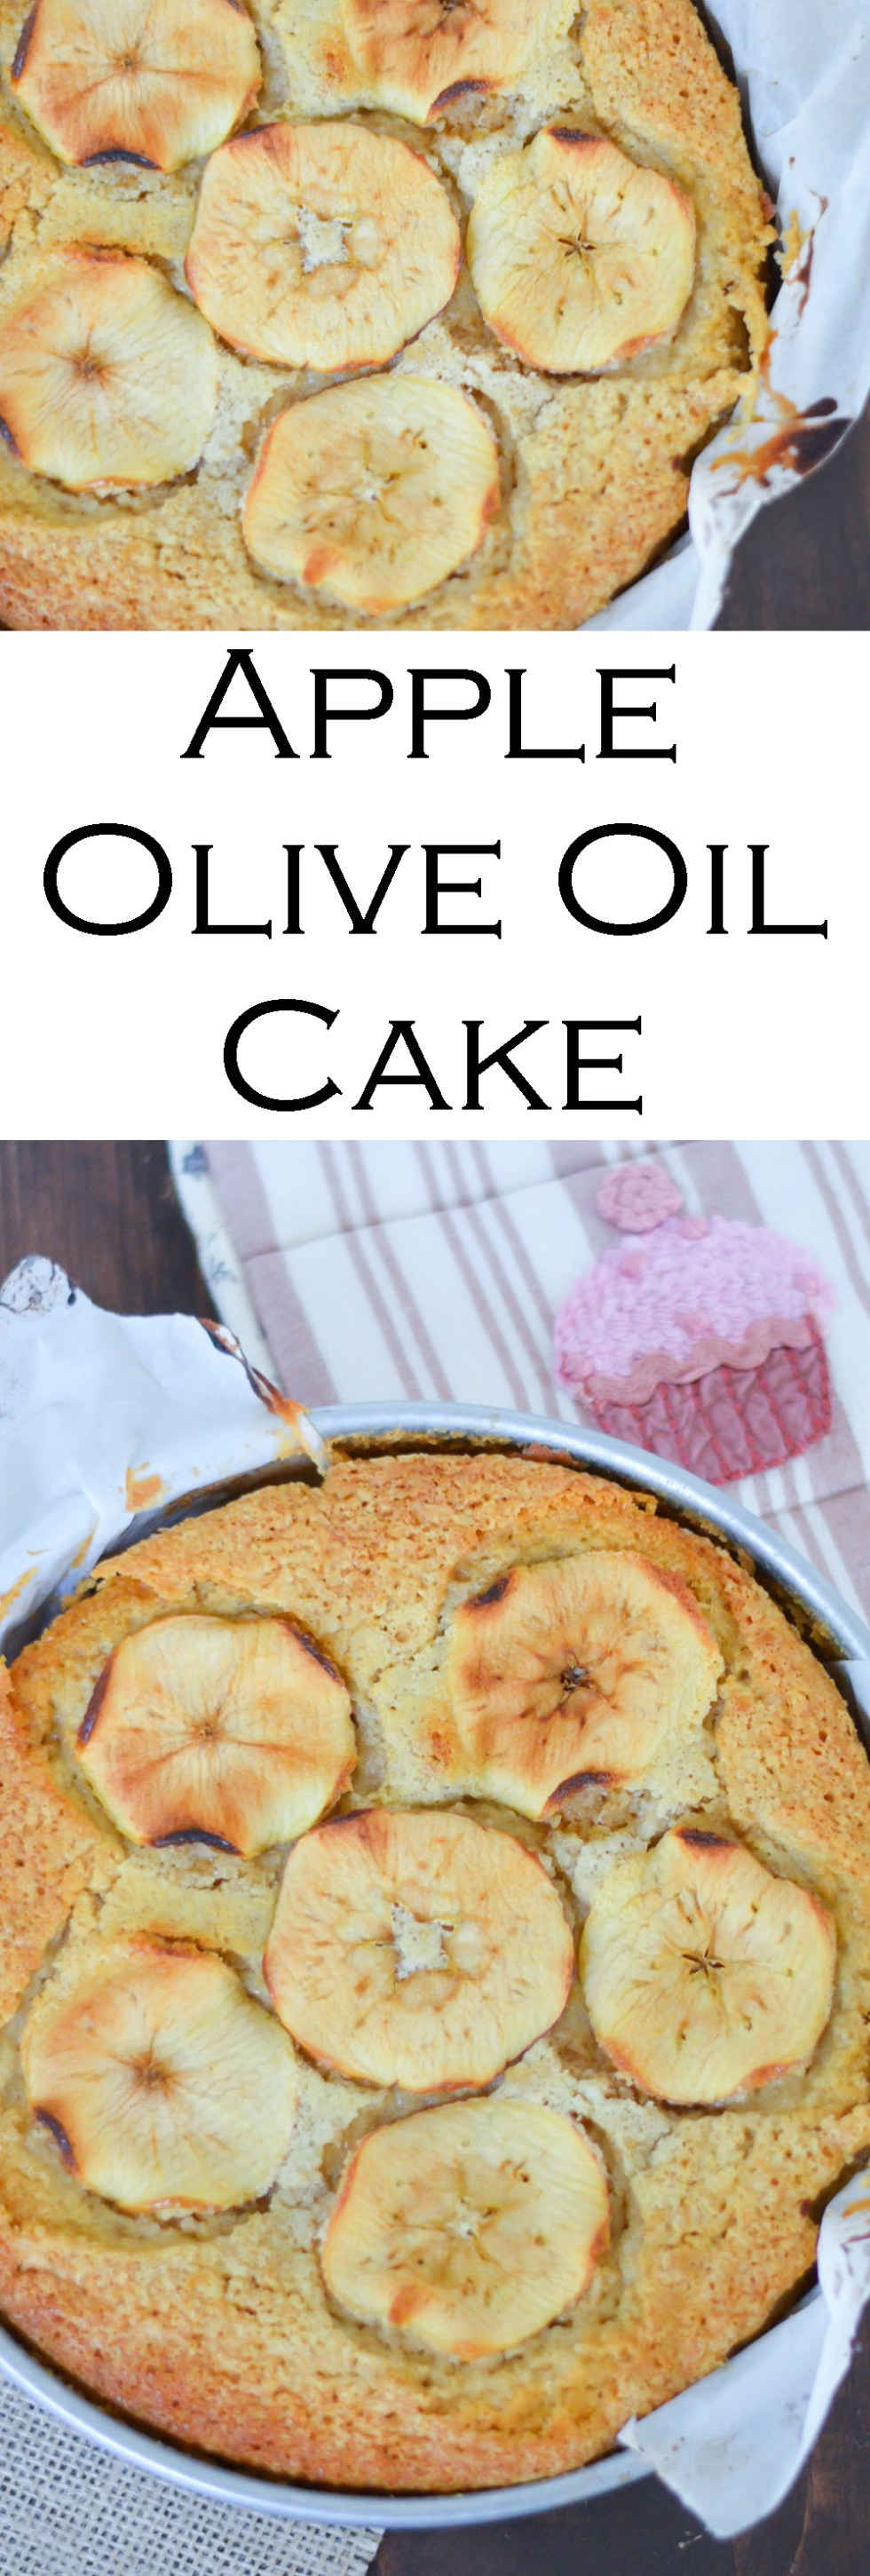 Apple Olive Oil Cake - Anthropologie Cookbook Sunday Suppers Review